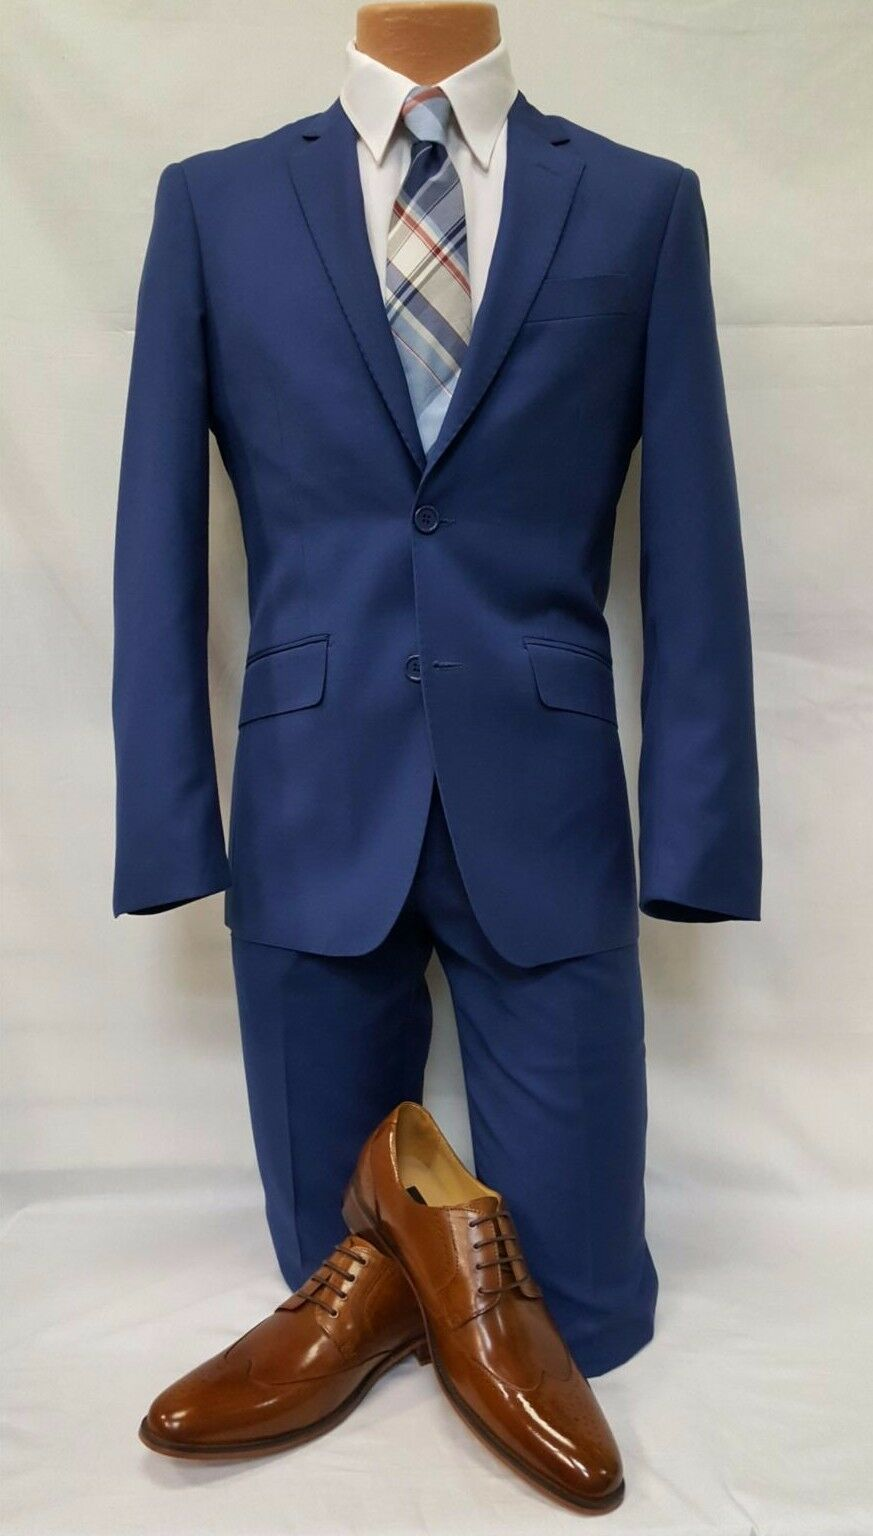 New Mens French Royal bluee Formal 2 Piece Casual Slim Fit Tuxedo Suit TUXXMAN